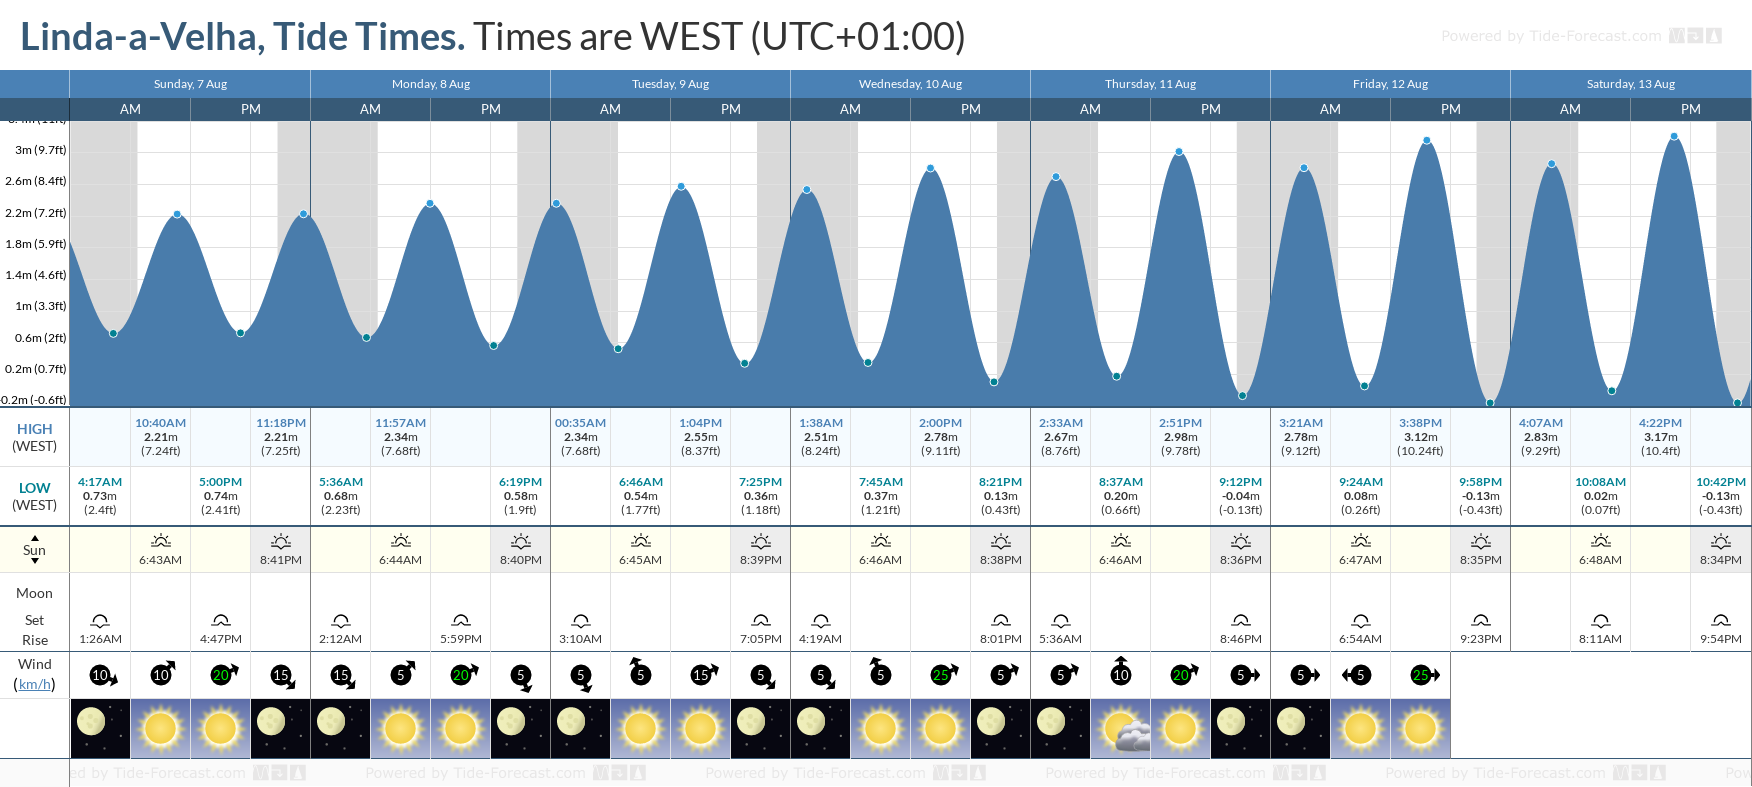 Linda-a-Velha Tide Chart including high and low tide tide times for the next 7 days